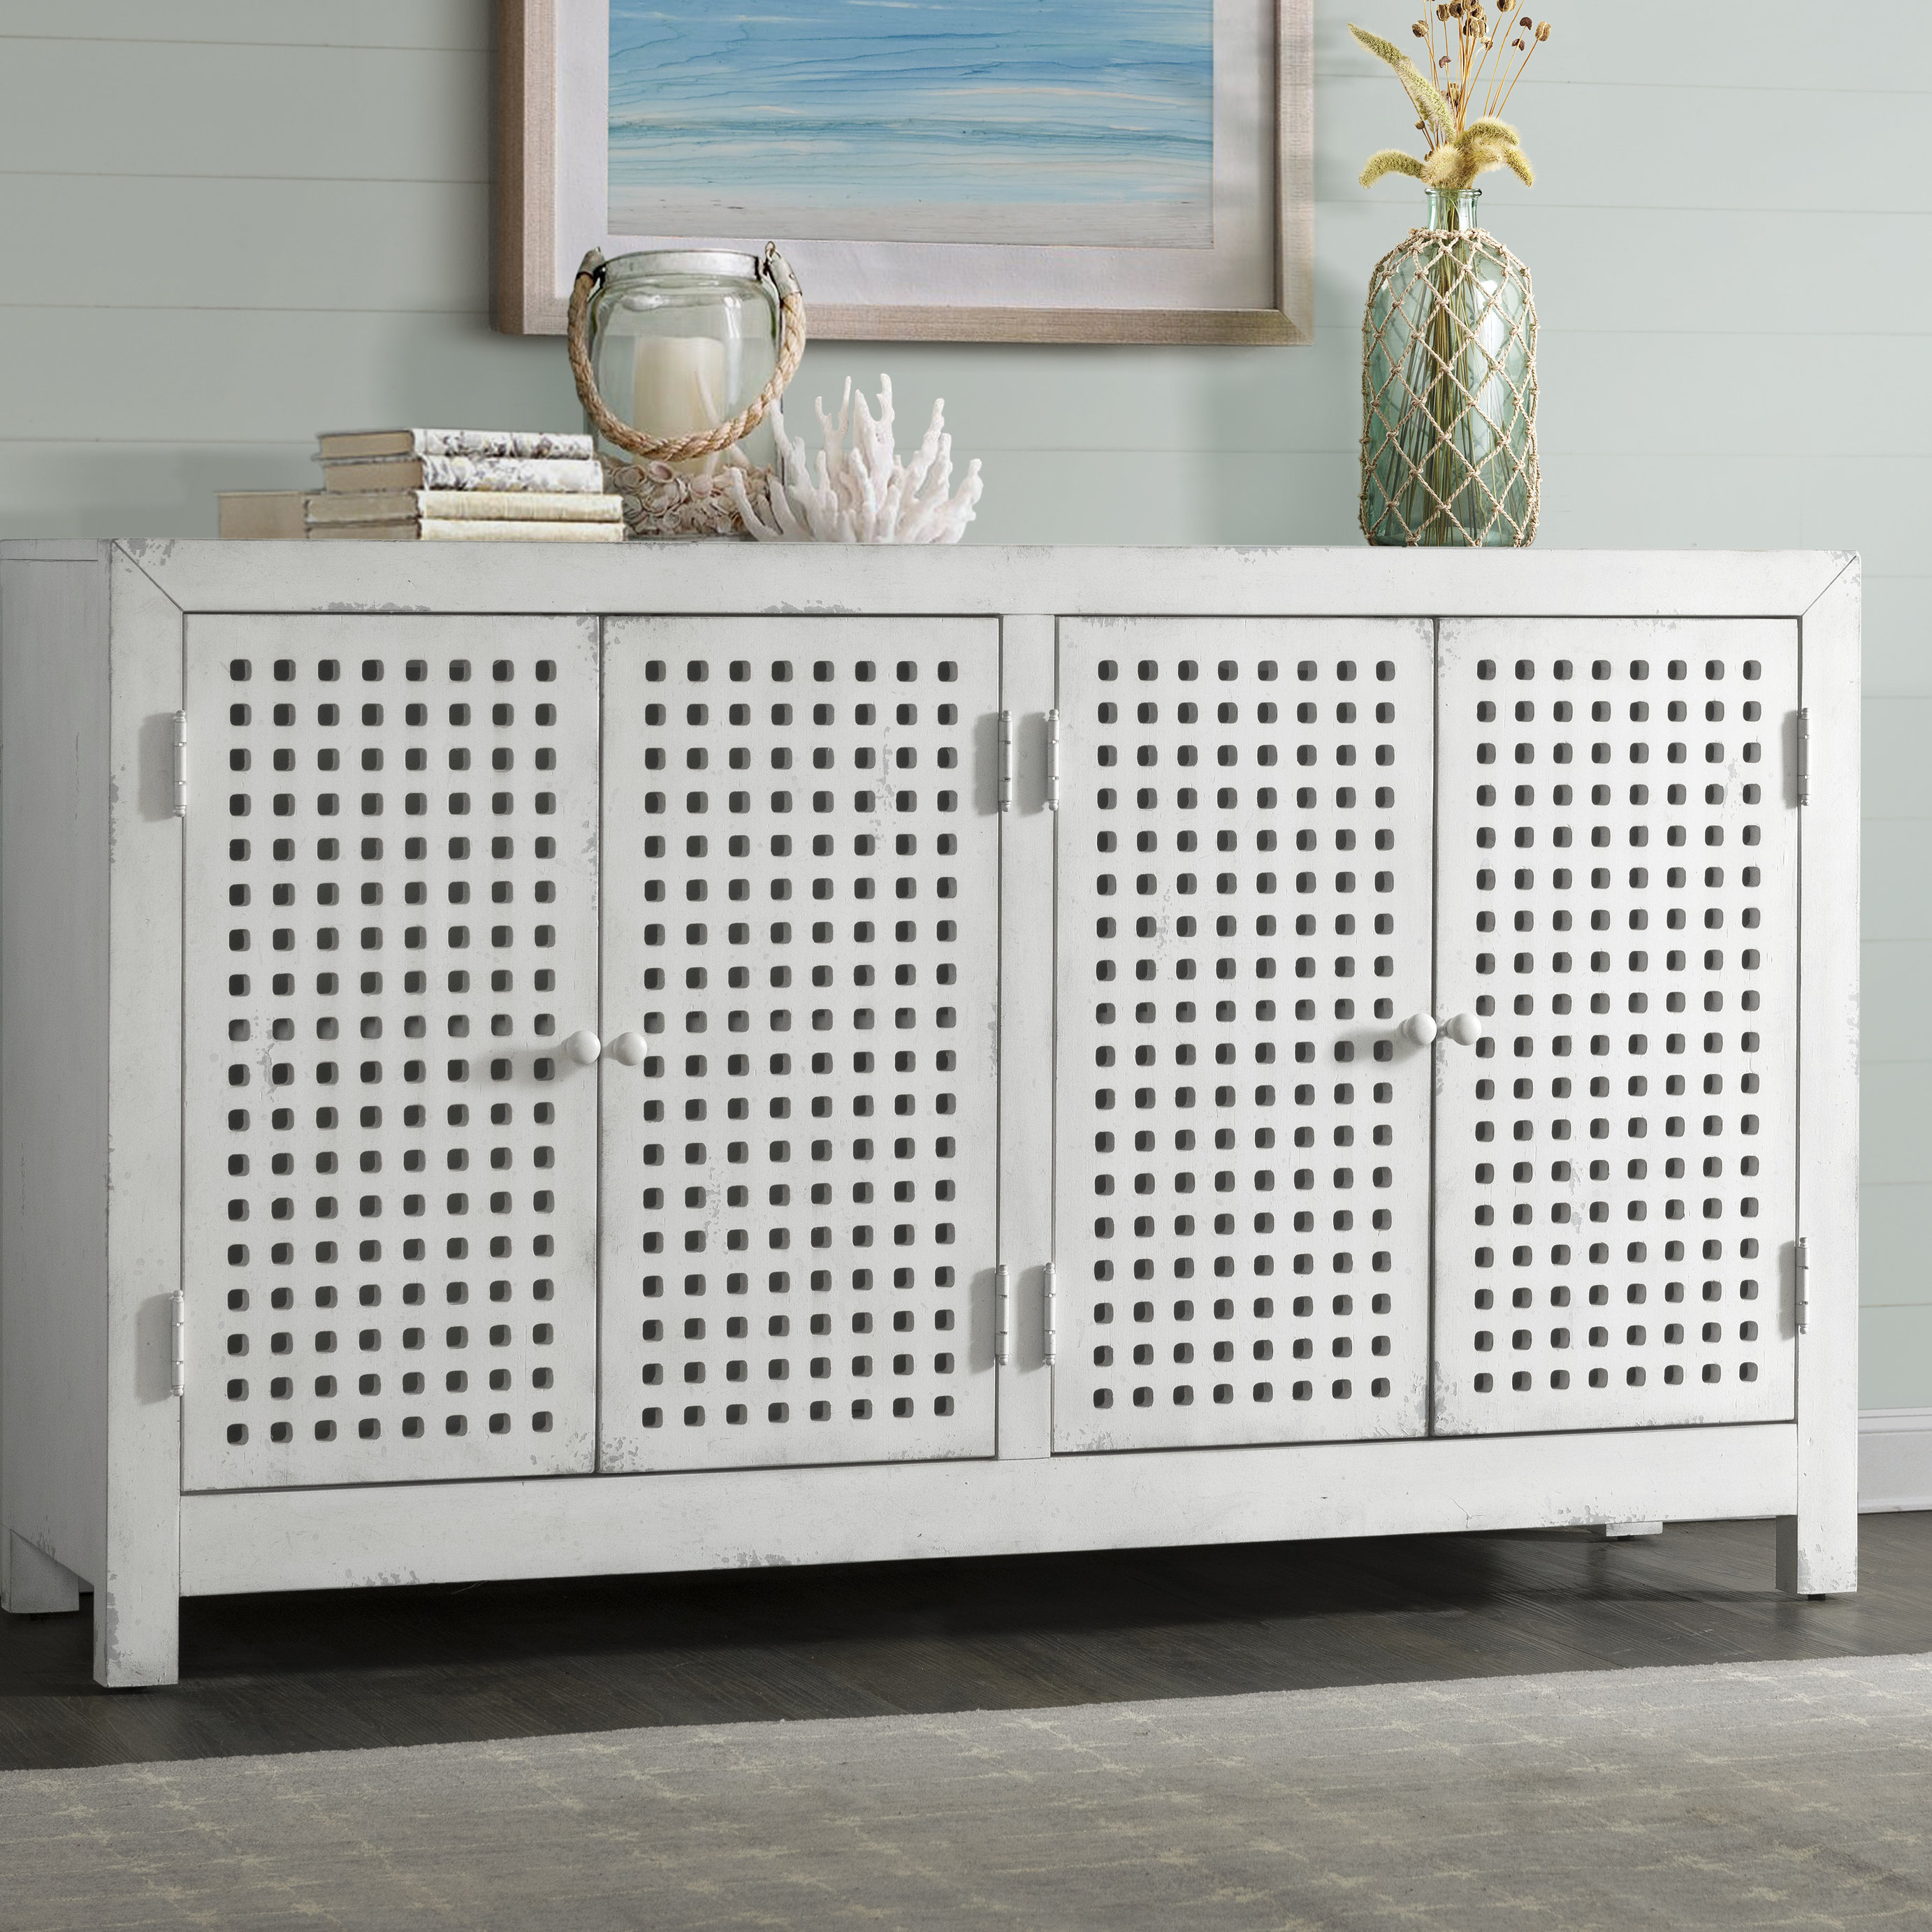 Isherwood Four Door Pierced Grid Sideboard intended for Saguenay Sideboards (Image 8 of 30)